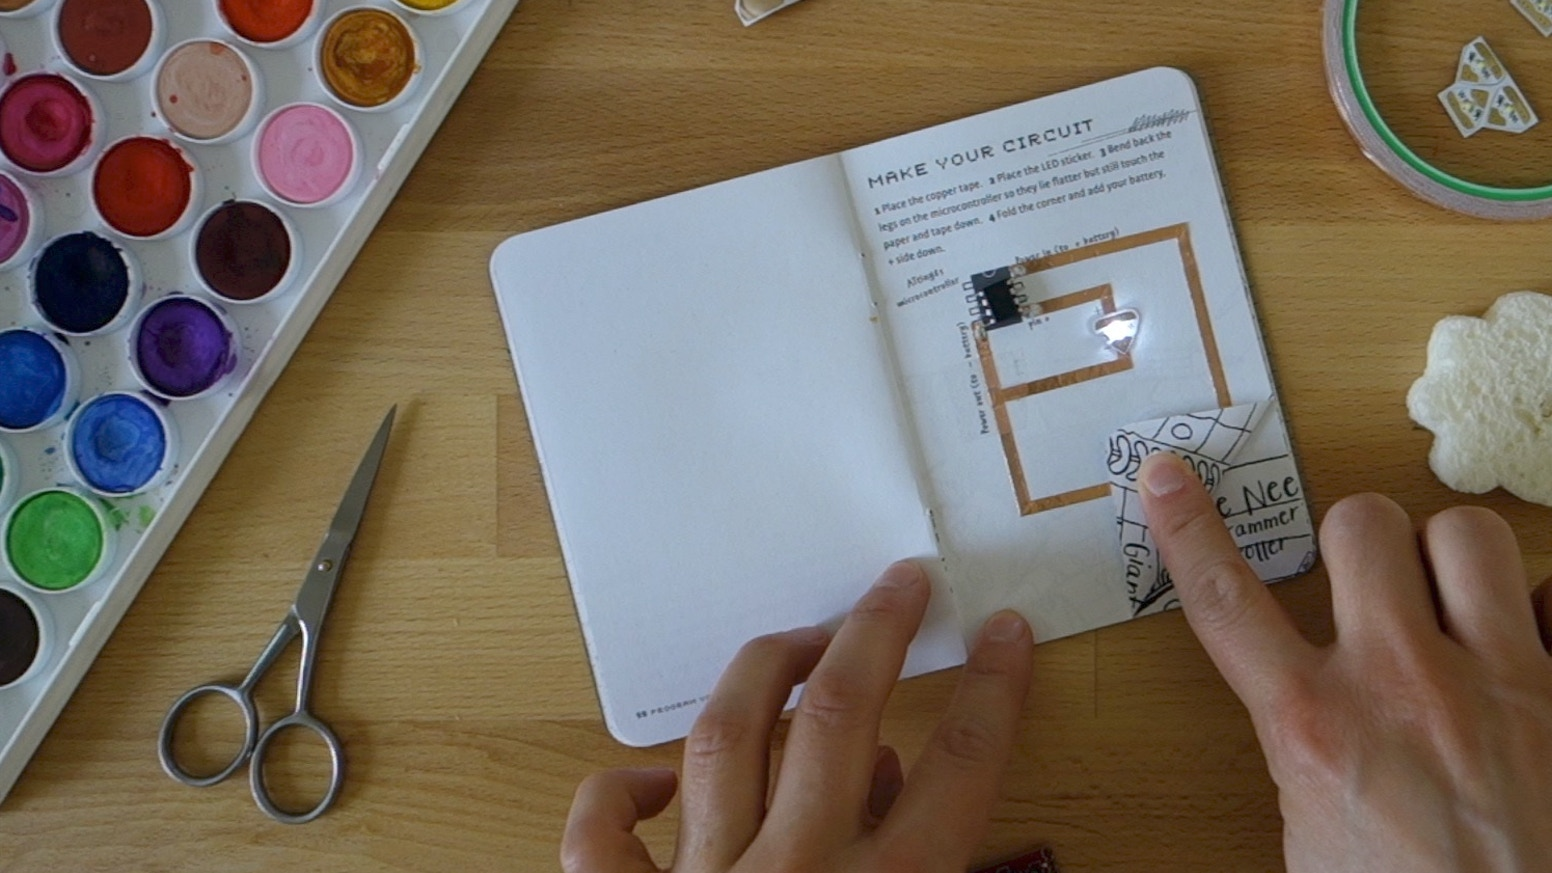 Hack Your Notebook Paper Meets Electronics By David Cole Kickstarter 1000 Circuit Board Stickers And Sticker Designs